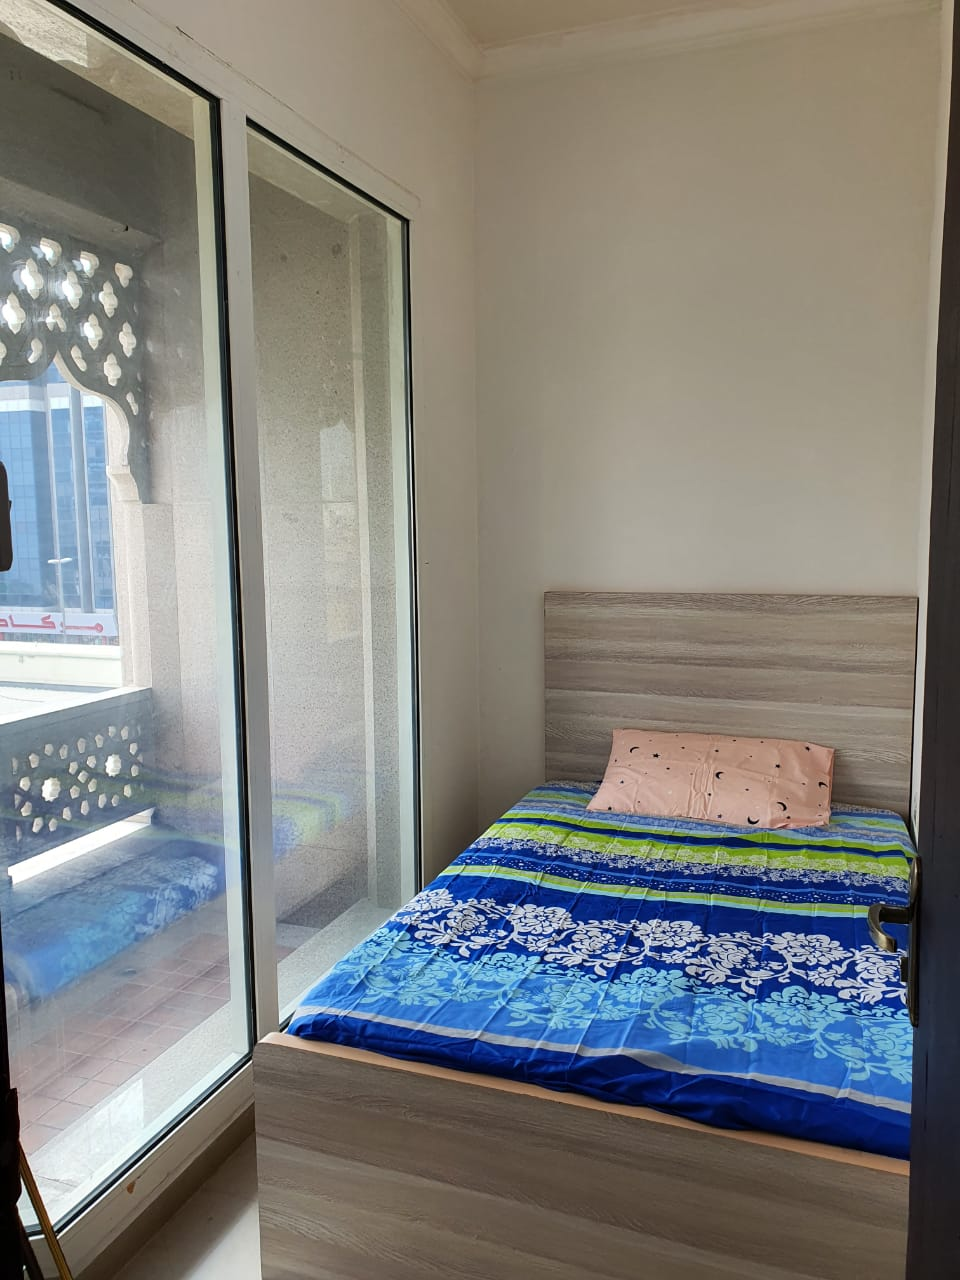 Partitions for Couples & Singles in 1000/Aed Including Everything in Bur Dubai